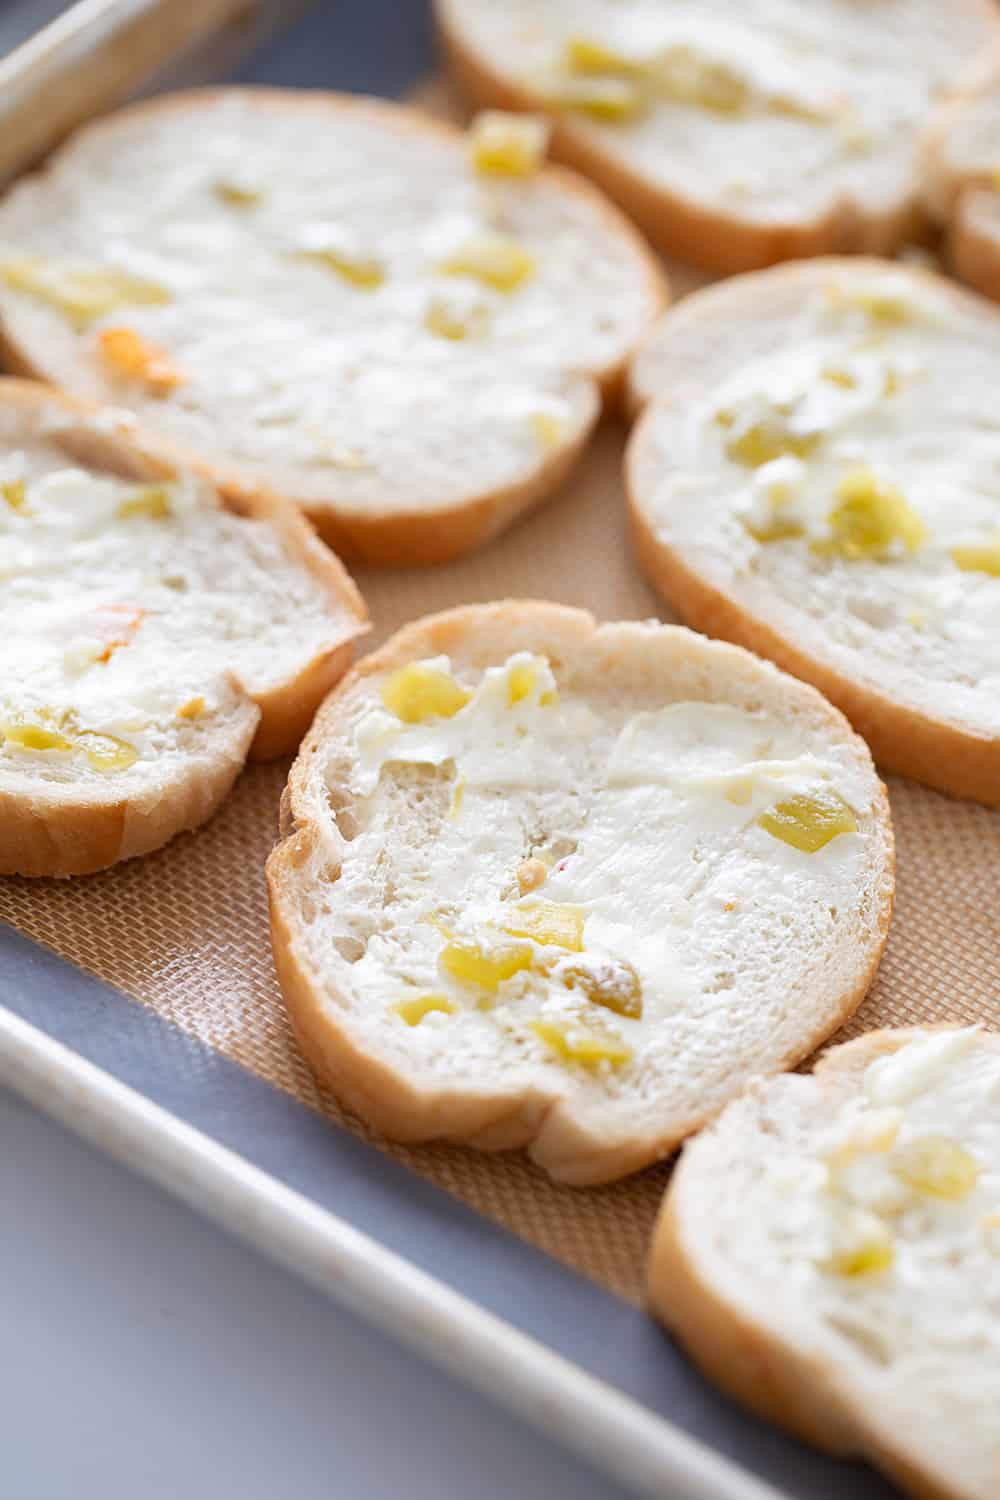 Creamy, cheesy spread with a bit of kick? Check! This zesty cheese spread is a must-have appetizer whether you're having a party of 1 or 100. | #halfscratched #appetizer #cheese #easyrecipe #hotappetizer #baking #cheesespread #easyappetizer